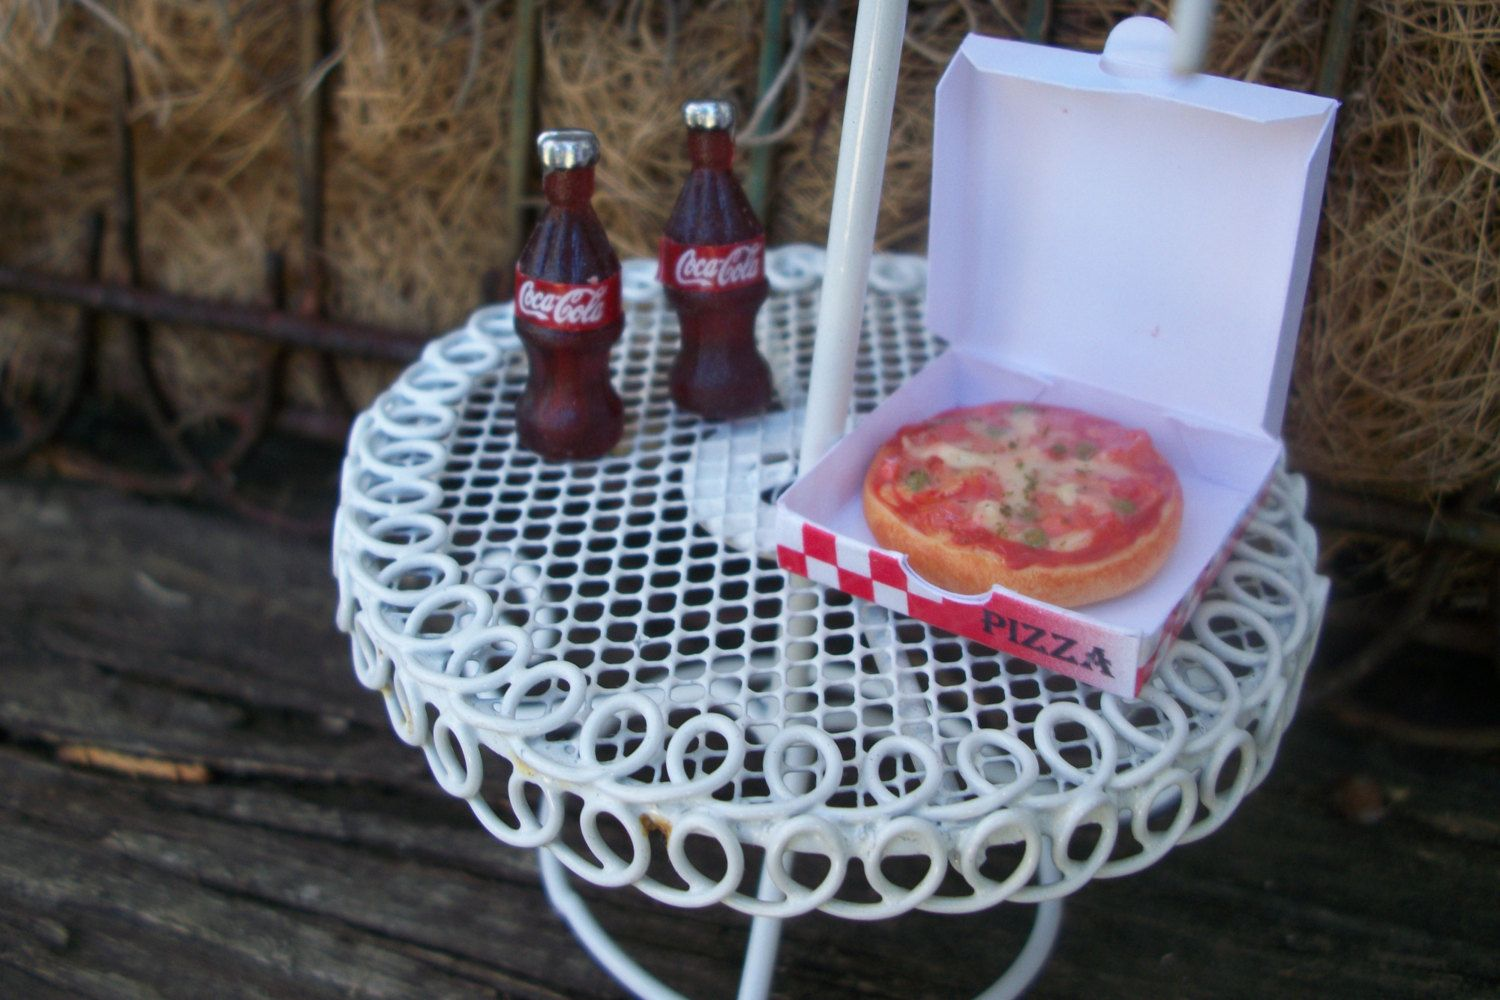 Miniature Fairy Garden Pizza in Box and Two Coke A Cola Bottle Drinks Polymer Clay Resin Food Accessory Supply 4 Piece Set by fairyinthegarden1 on Etsy